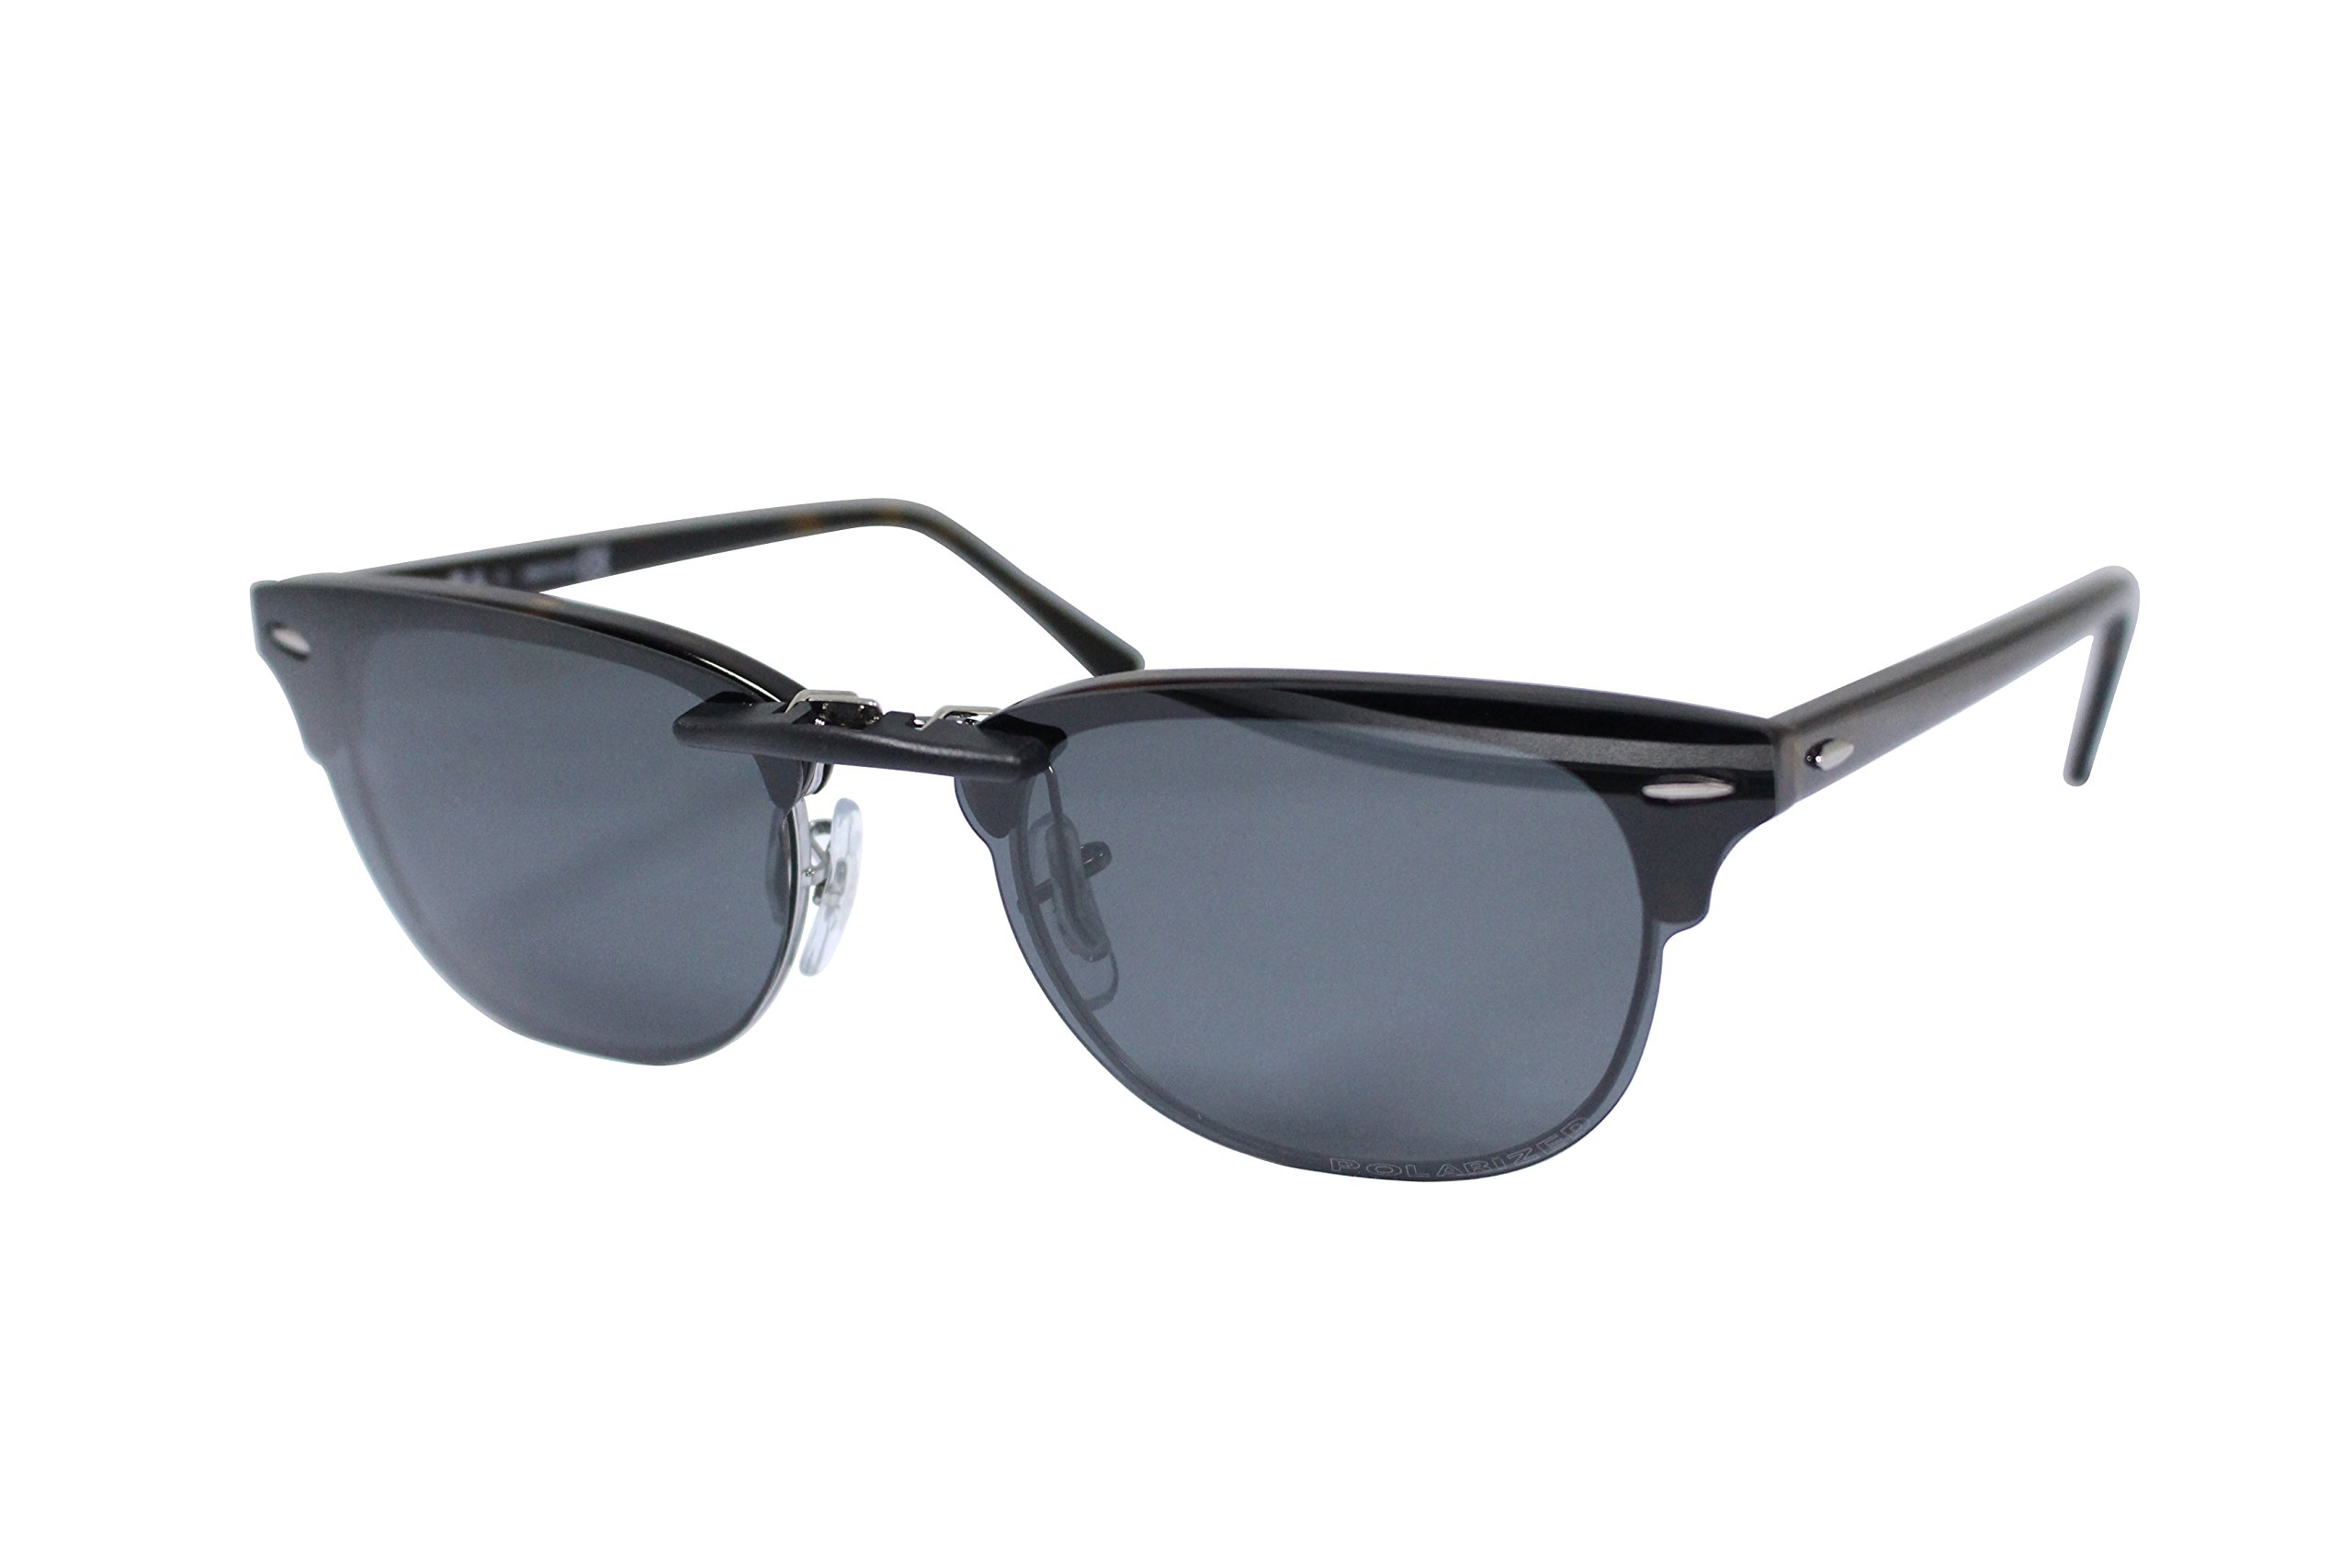 Custom Polarized Clip on Sunglasses For Ray-Ban CLUBMASTER RB5154 RX5154 51-21-145(Black)